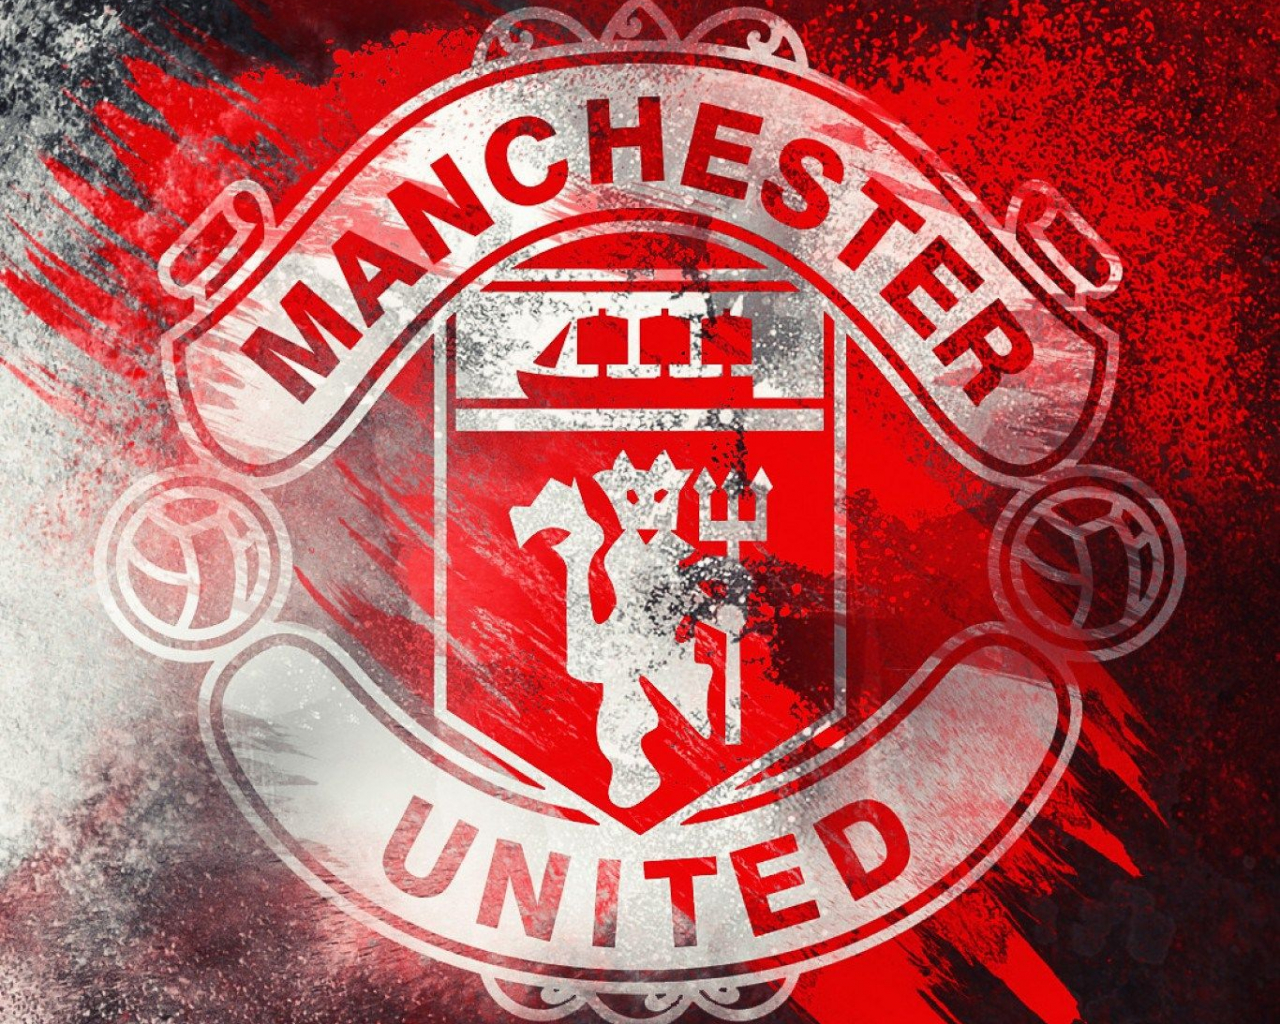 Free Download 55 Manchester United 4k Wallpapers Download At